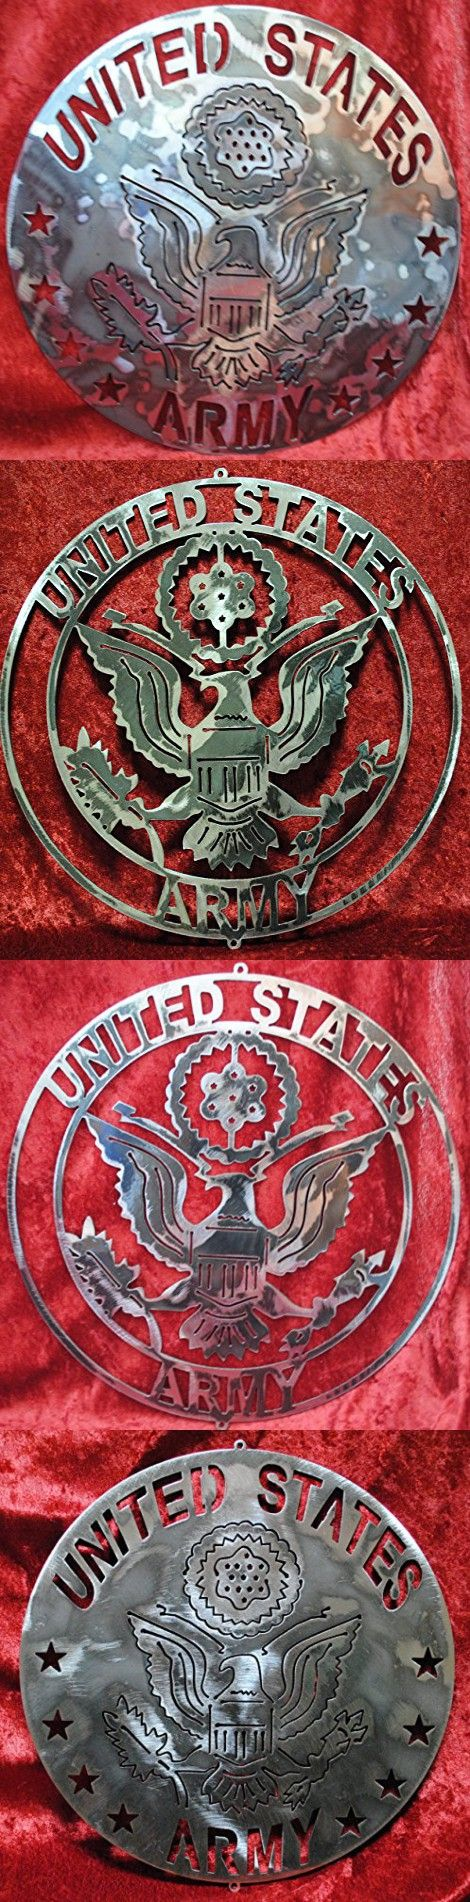 United States ARMY, USA, Military, ARMY, Land-Based Military, Continental Army, Metal Military Round, Metal Eagle, Soldiers, Veteran, Gift